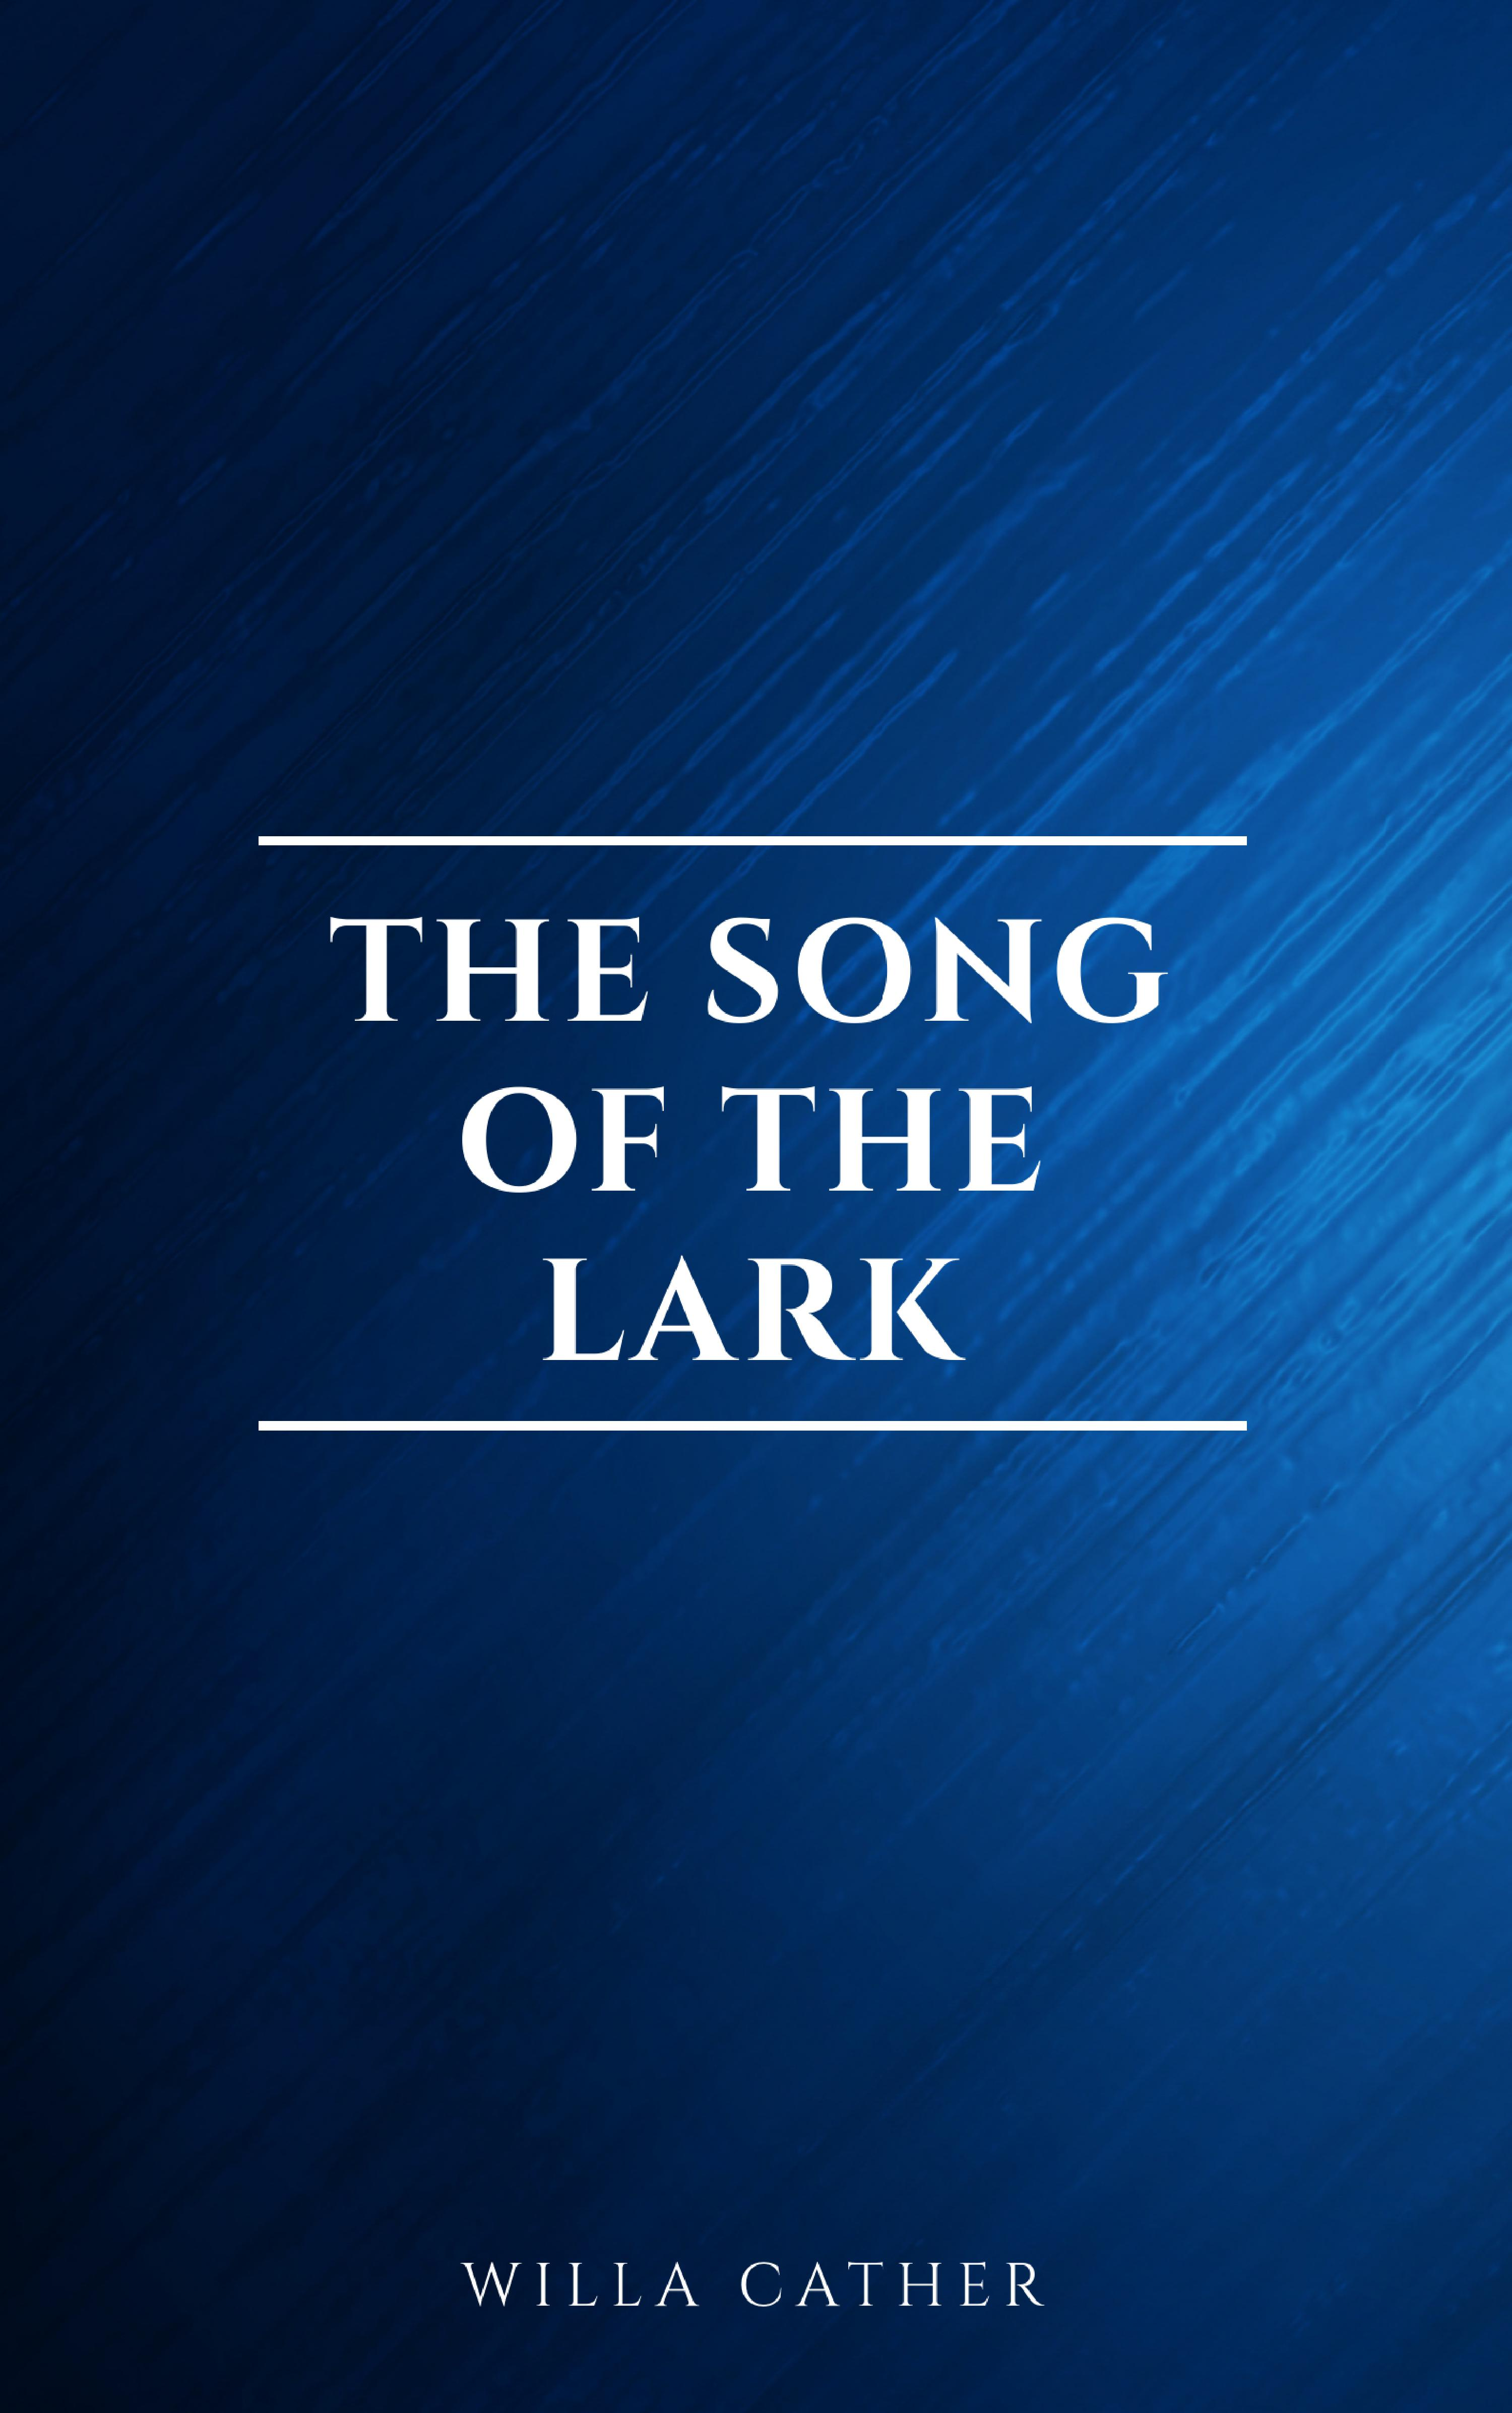 Willa Cather The Song of the Lark lark